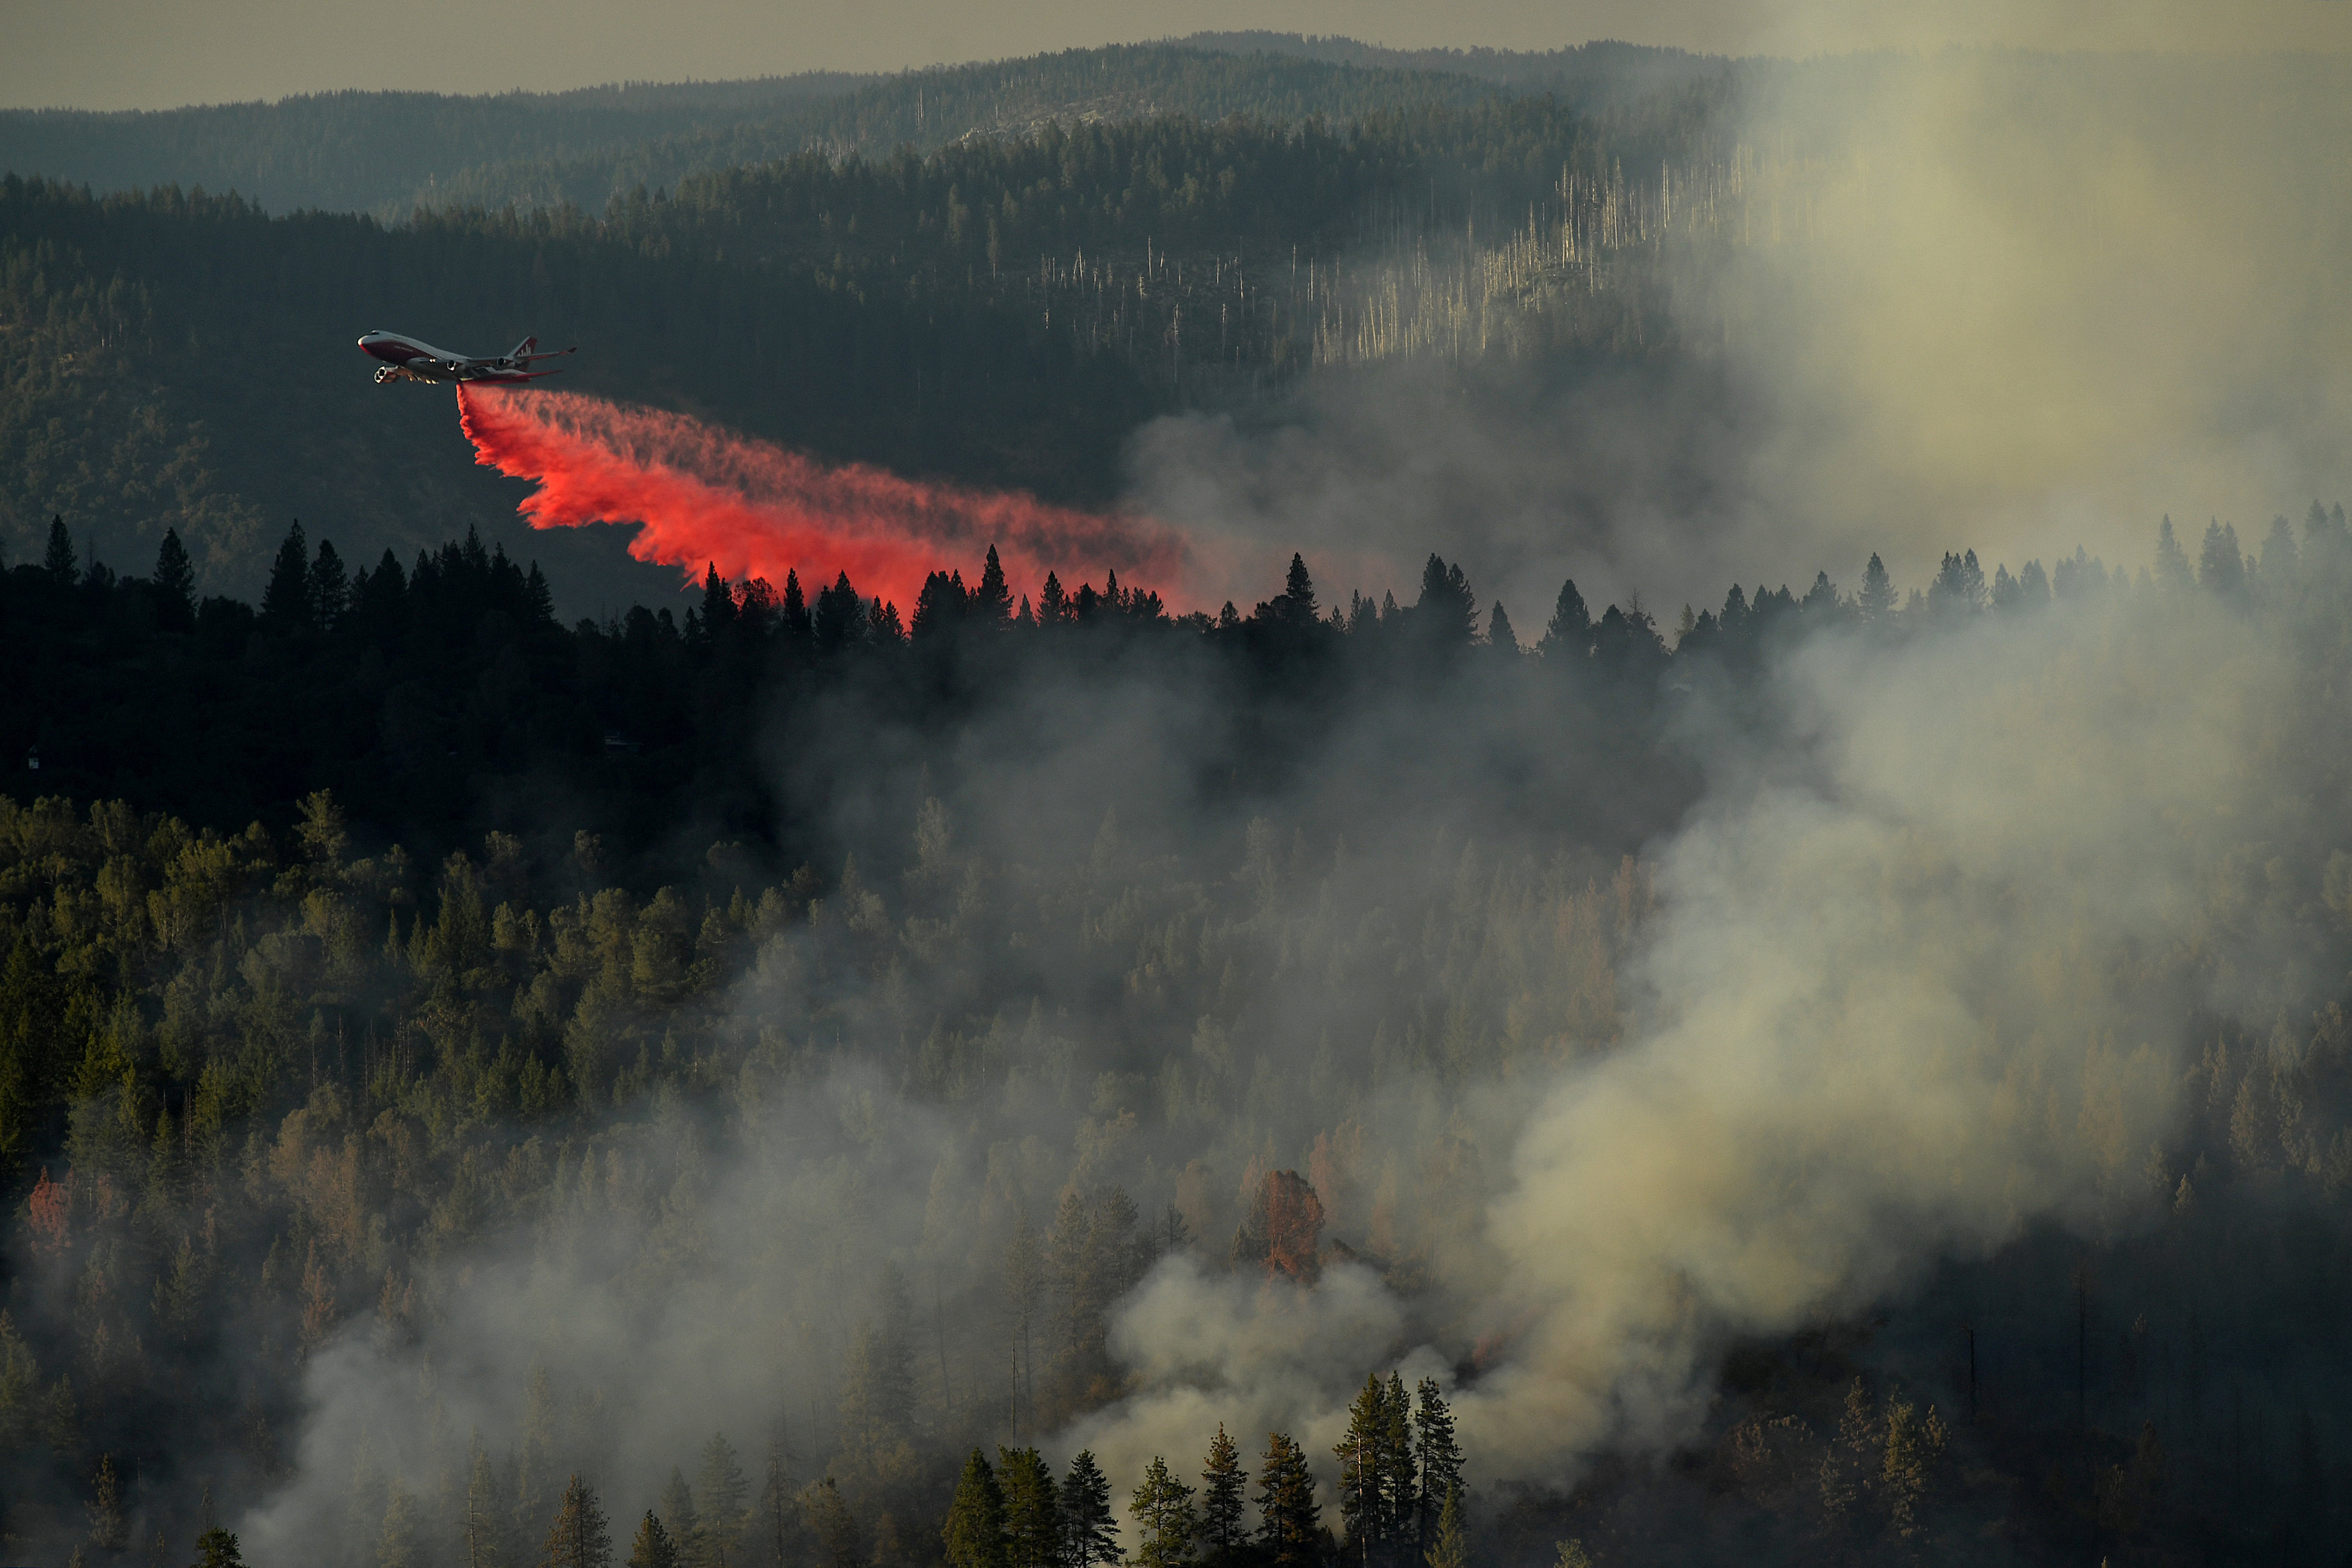 A 747 SuperTanker drops retardant while battling the Ponderosa Fire east of Oroville, California, U.S. August 30, 2017.